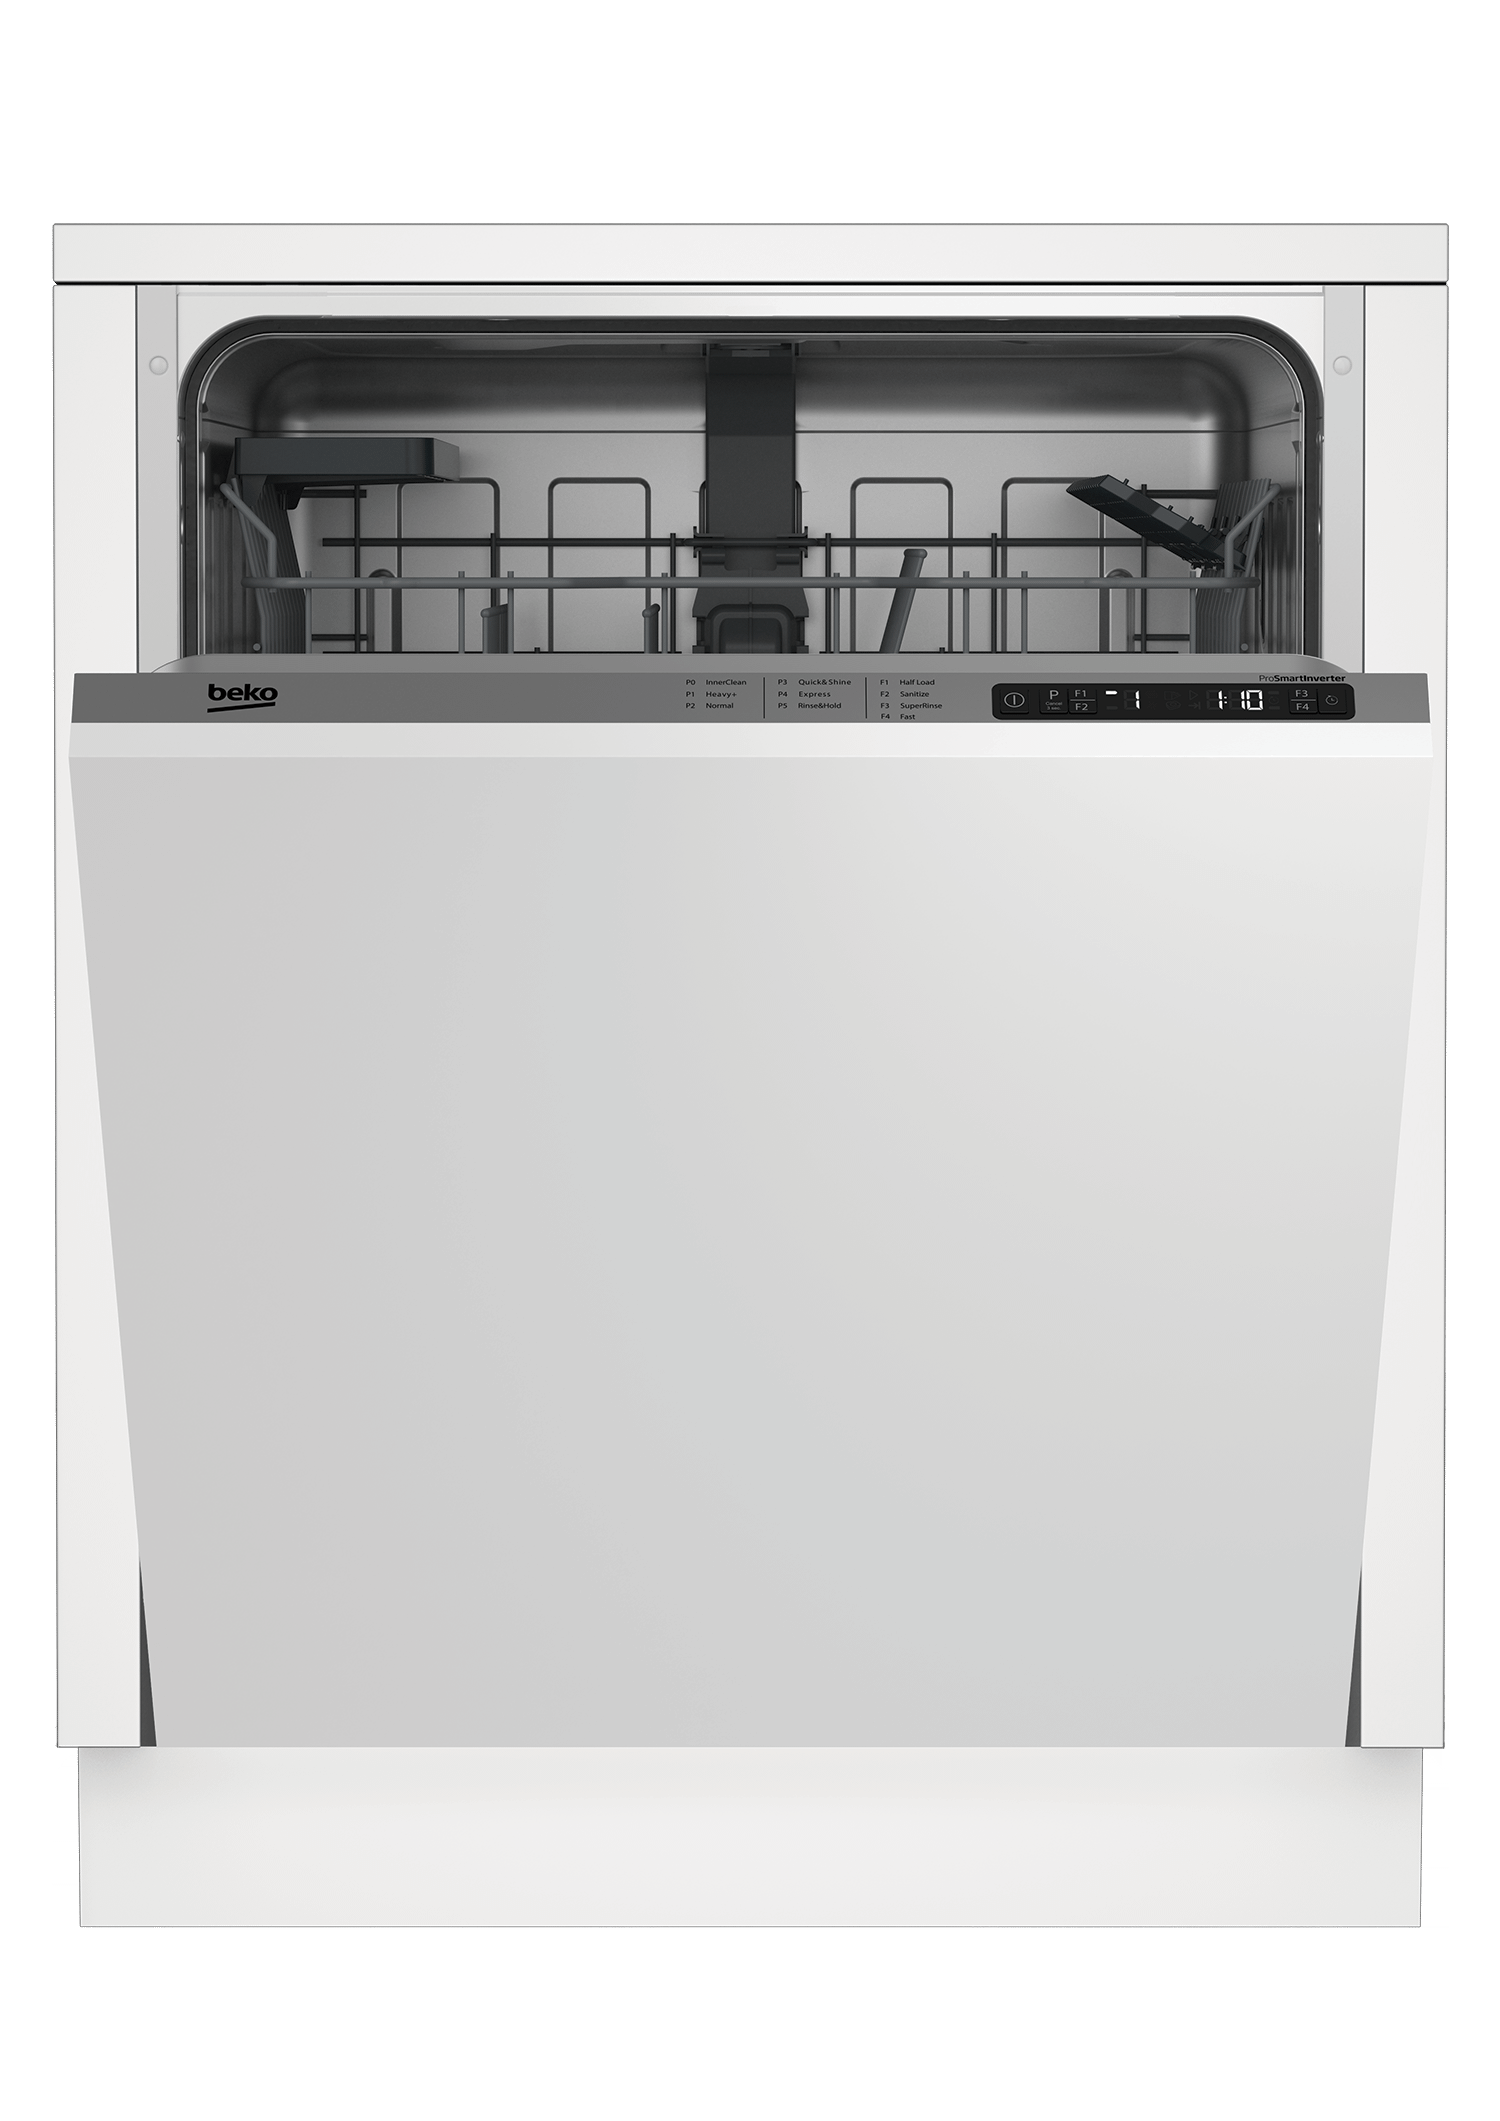 Full Size Dishwasher, 14 place settings, 48 dBa, Fully Integrated Panel Ready